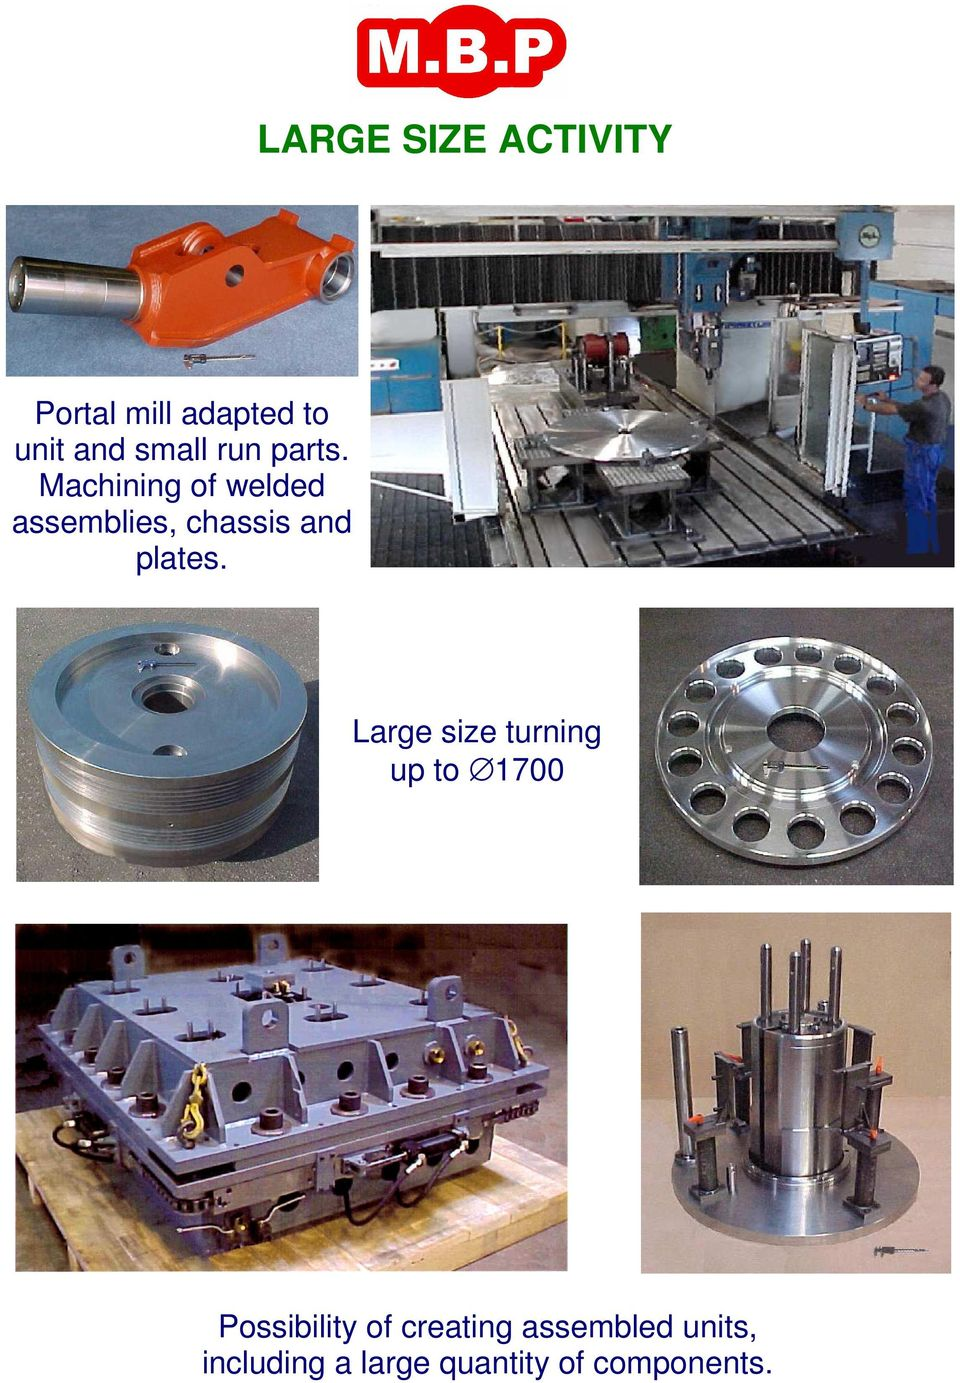 Machining of welded assemblies, chassis and plates.